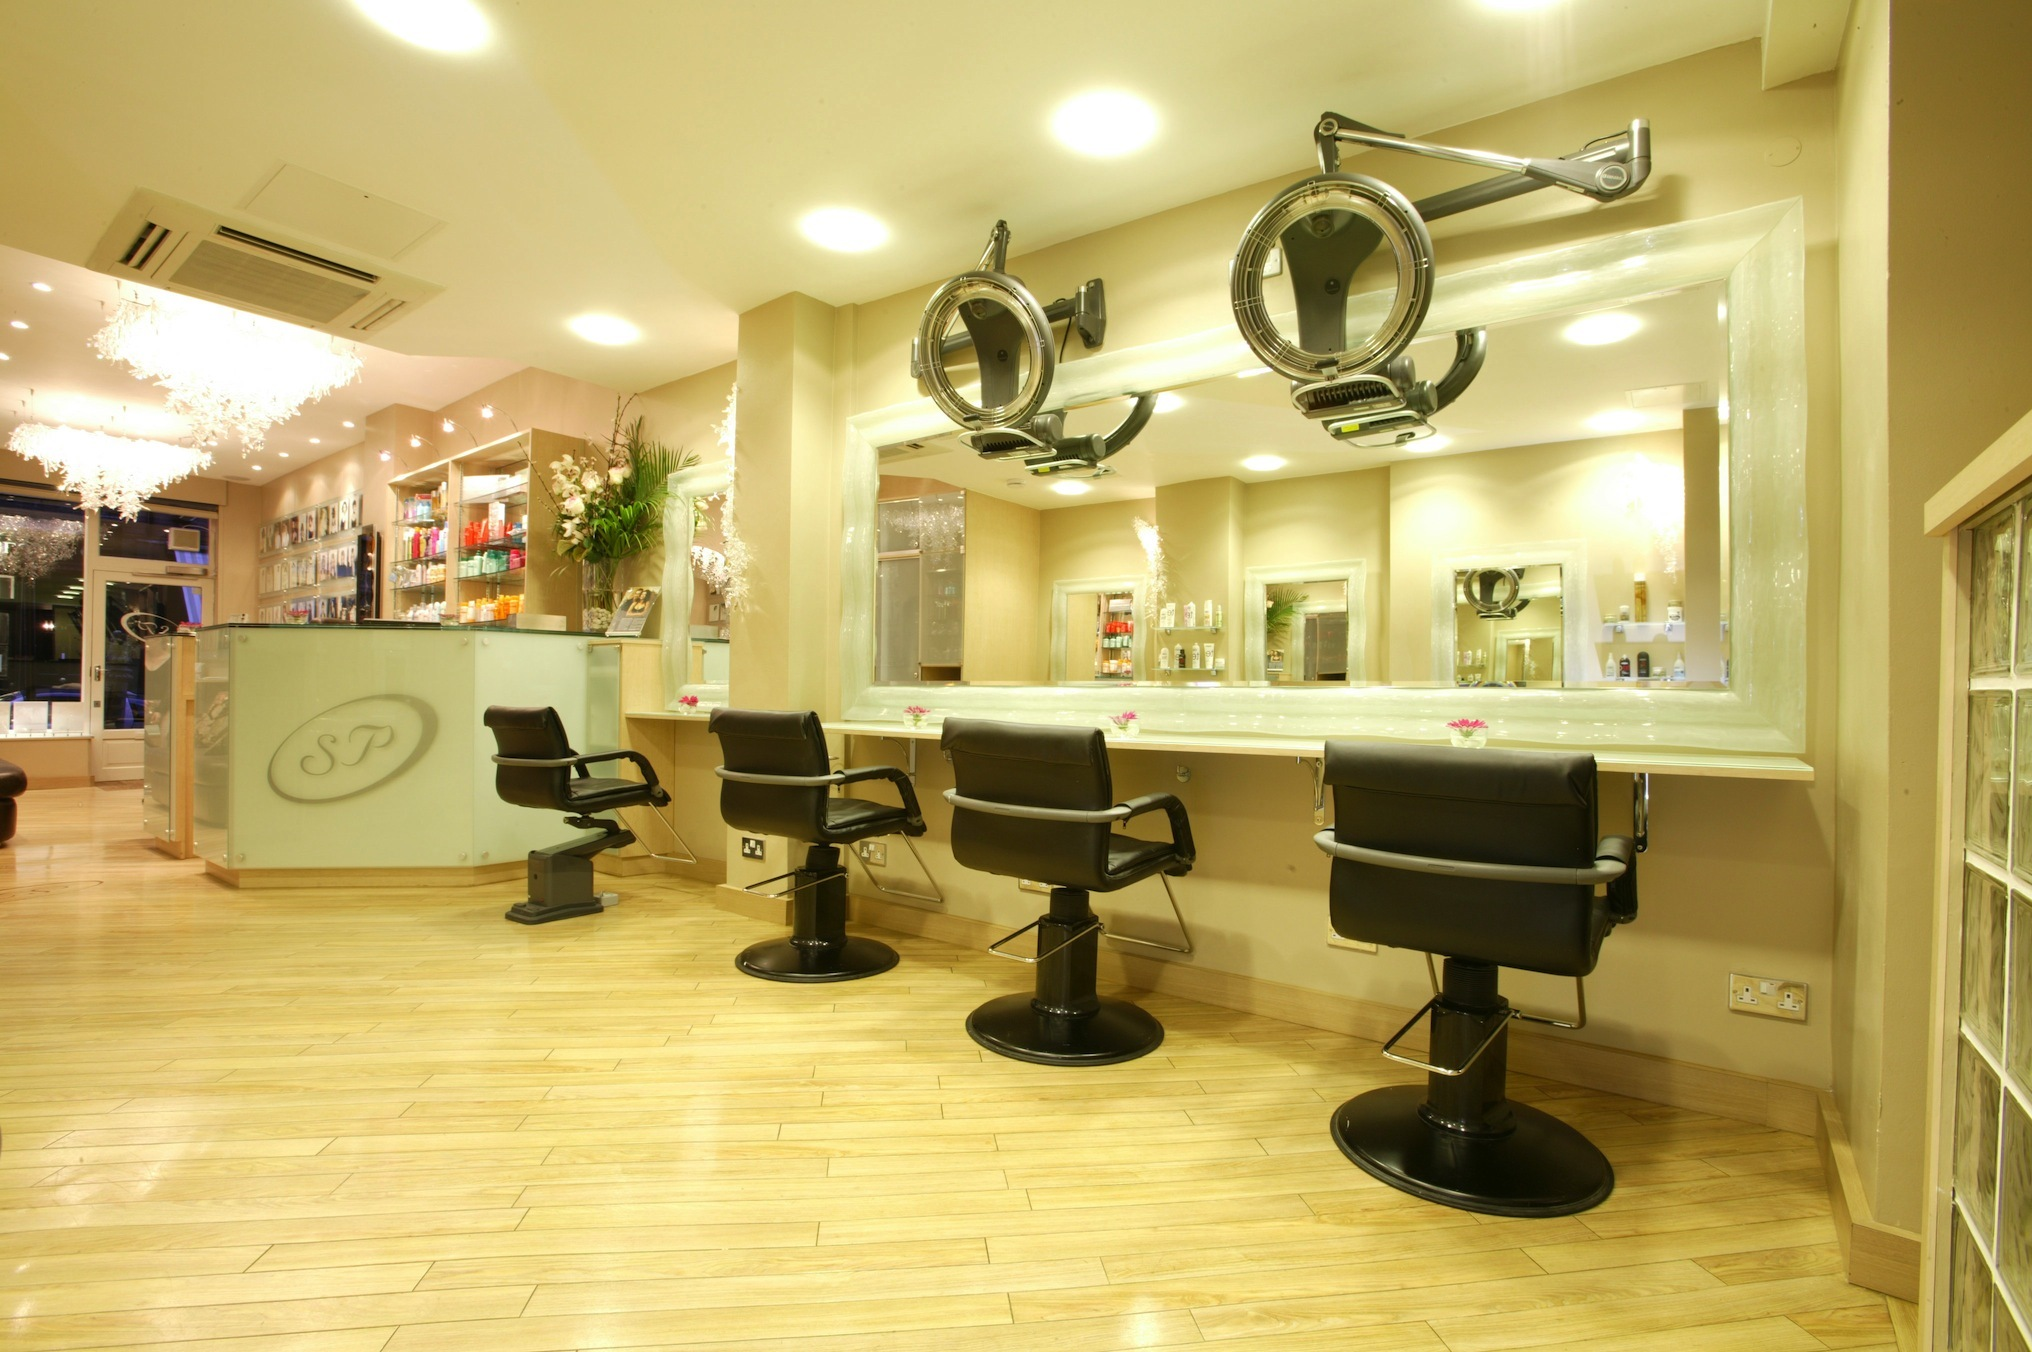 London 39 s best free haircuts cheap haircuts time out london for Salone design